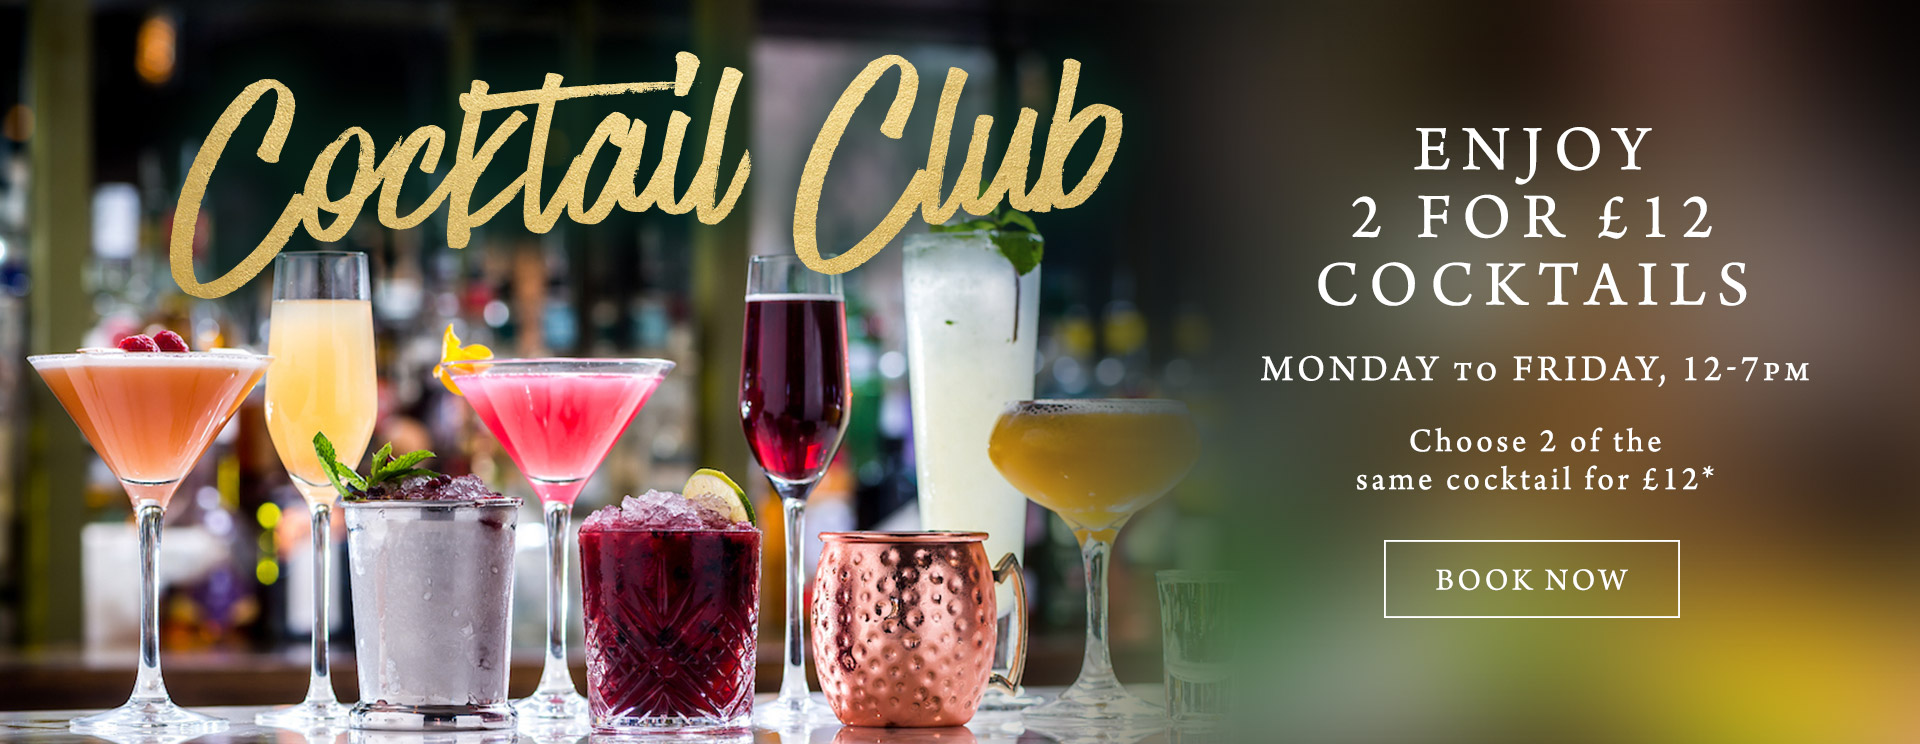 2 for £12 cocktails at The Kings Arms